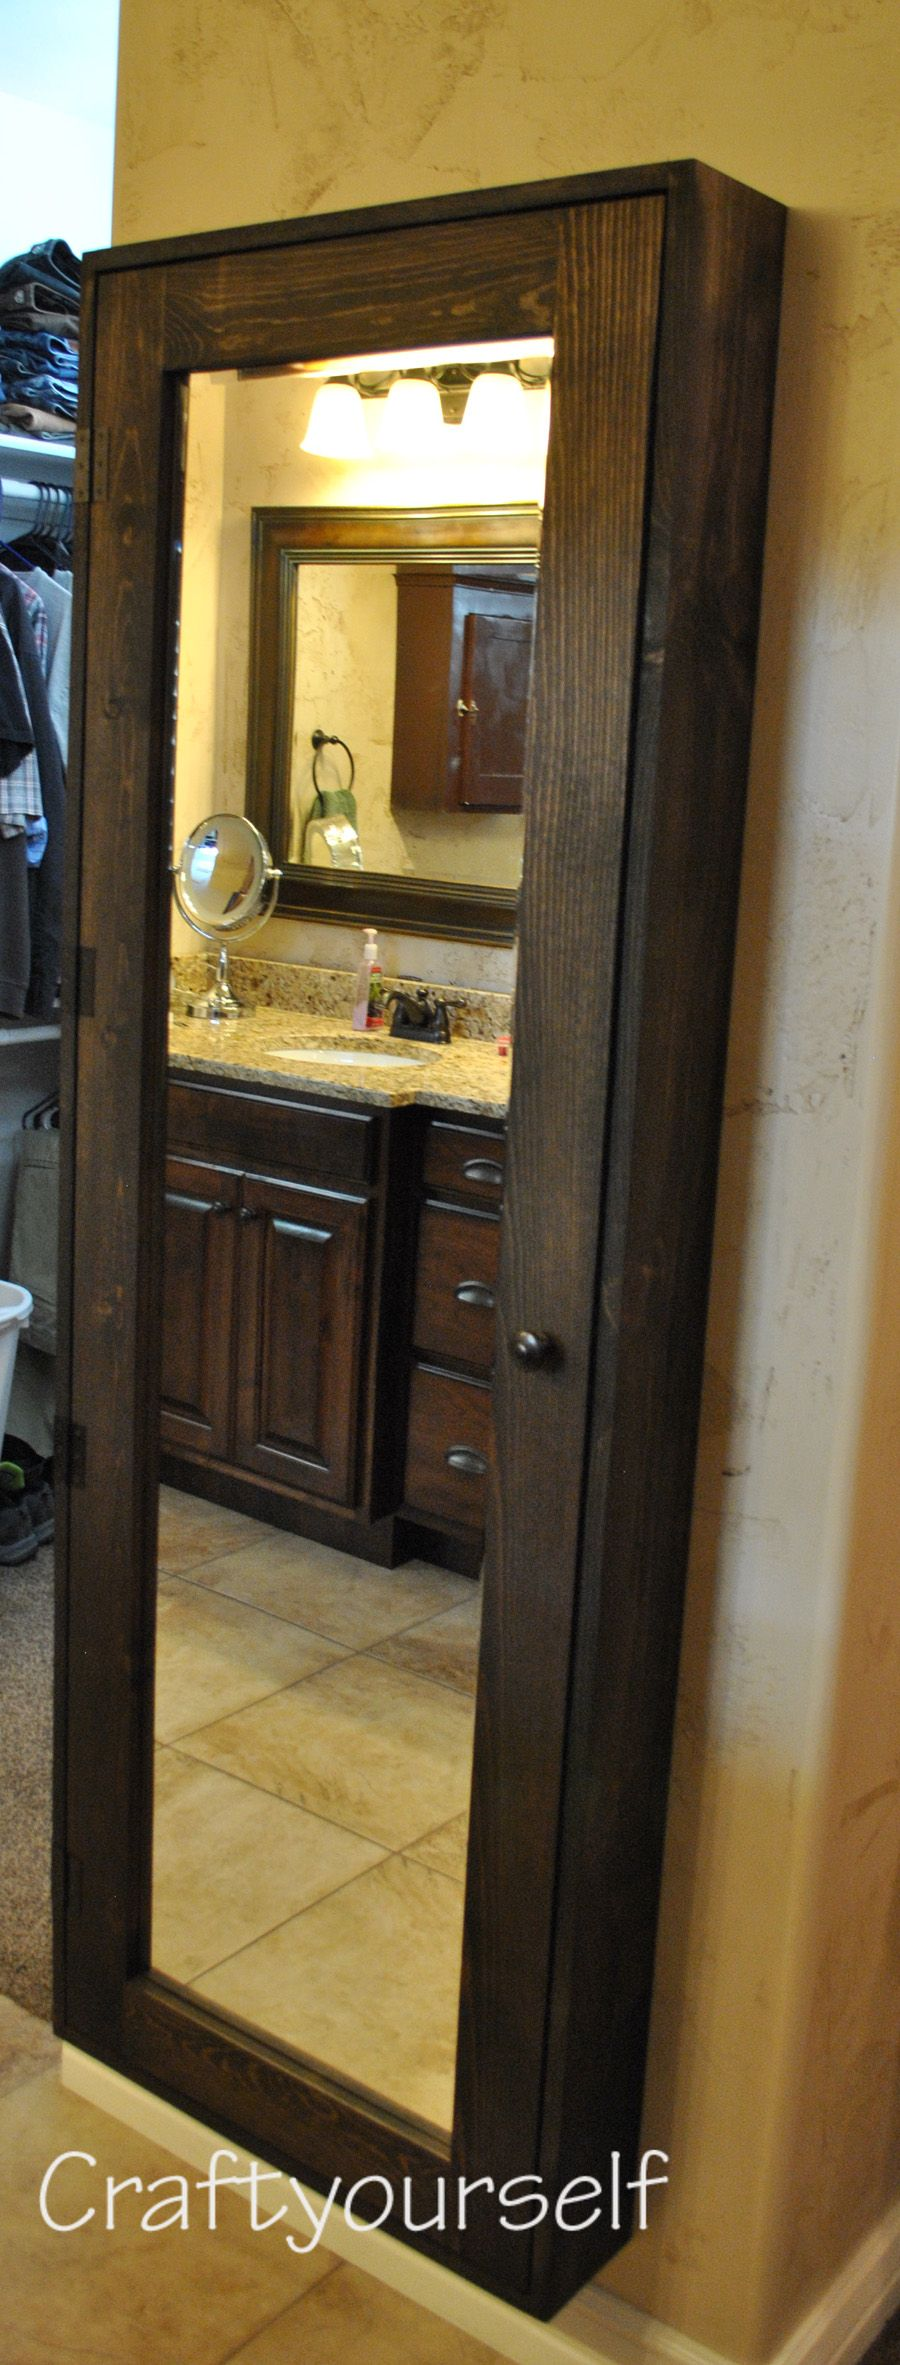 DIY Bathroom Cabinet with Mirror -